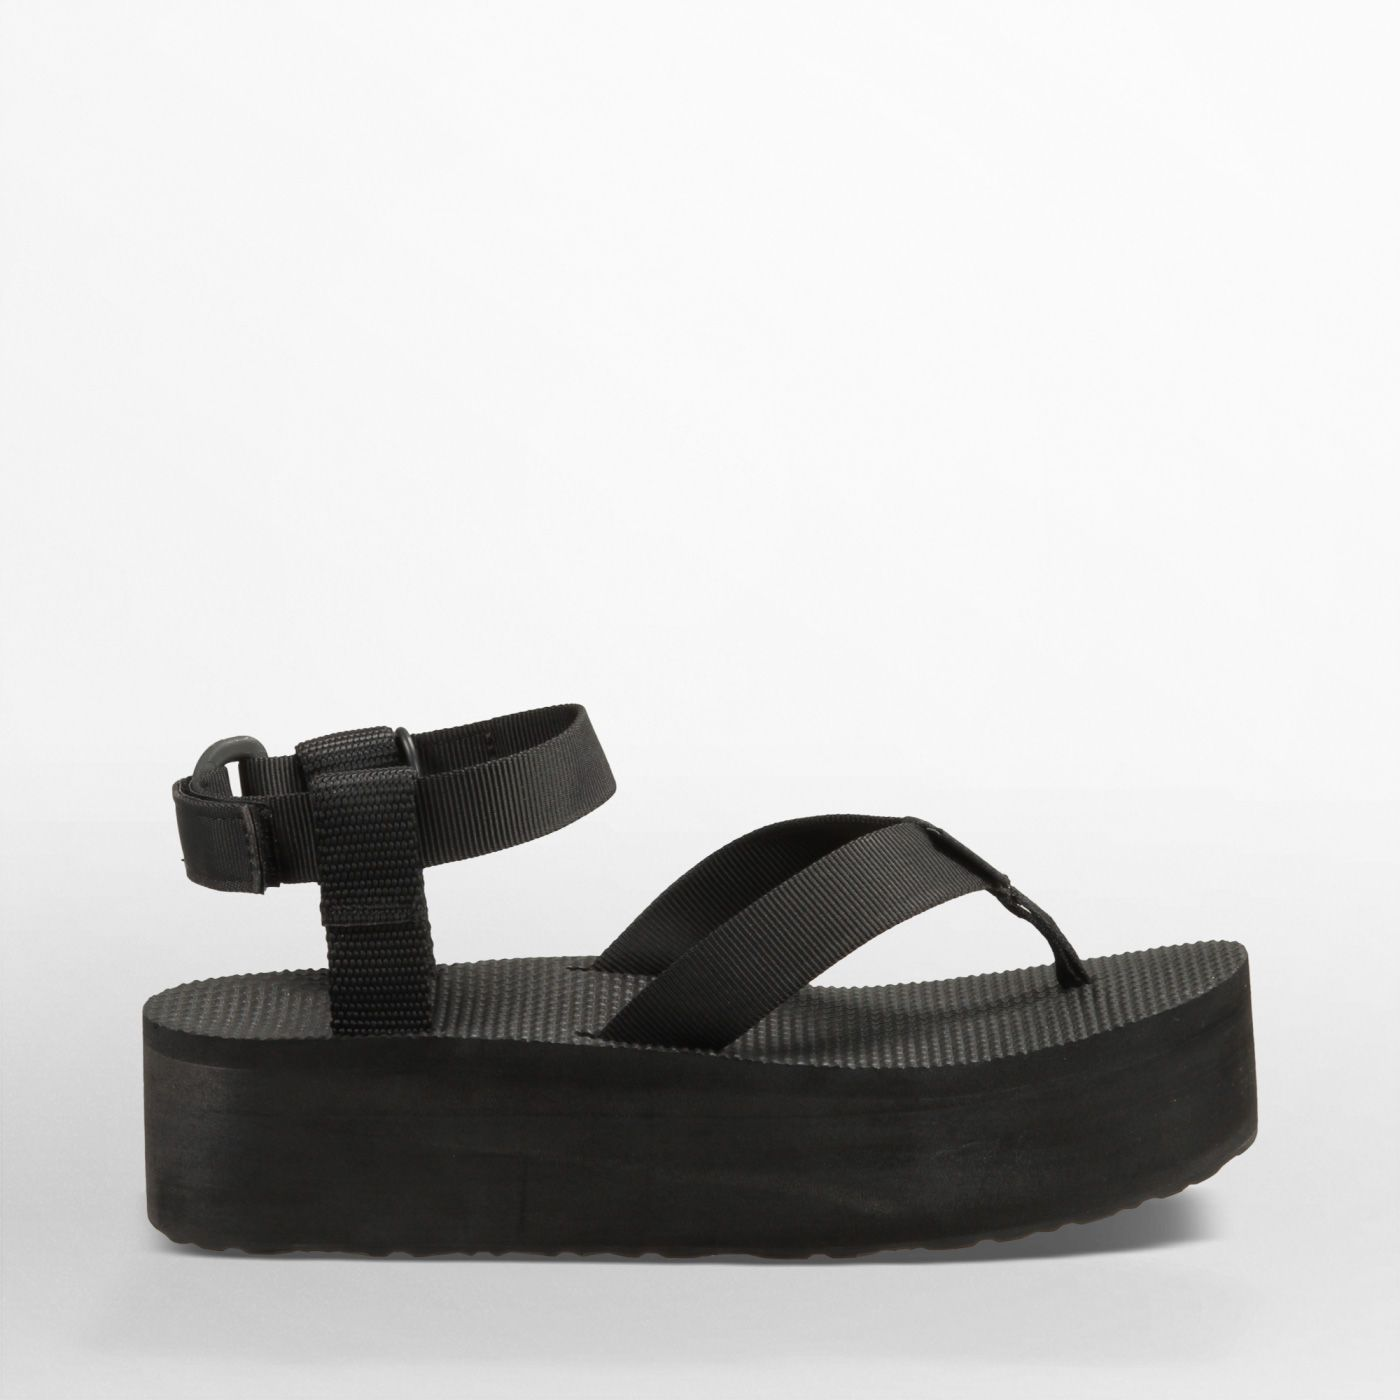 Free Shipping & Free Returns on Authentic Teva® Women's Sandals. Shop our Collection of Sandals for Women including the Flatform Sandal at Teva.com